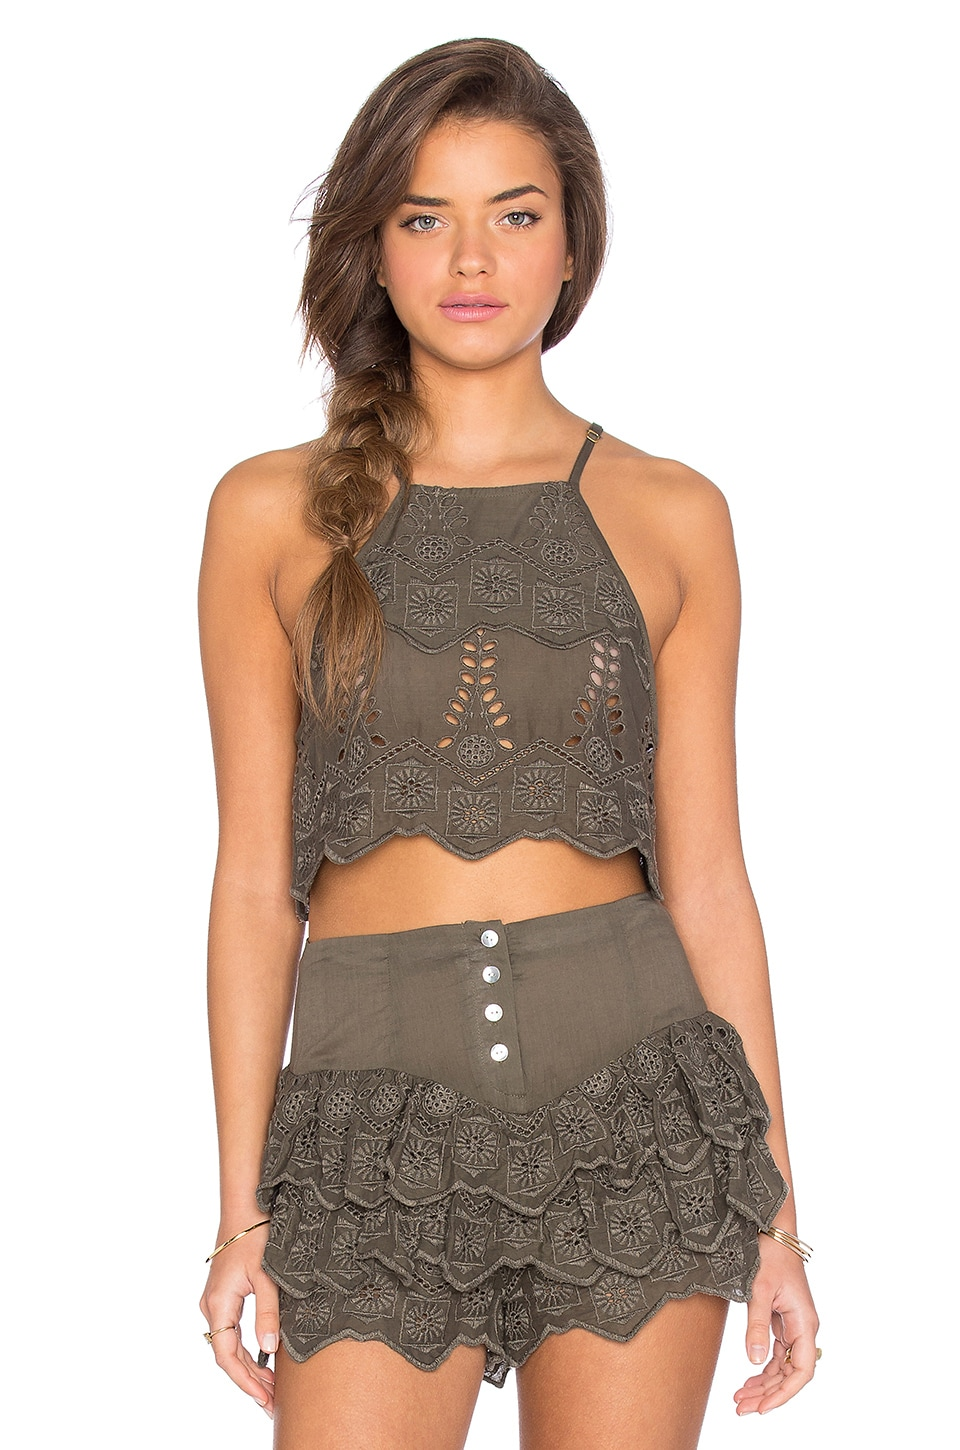 Somedays Lovin Serenade Lace Crop Top in Khaki